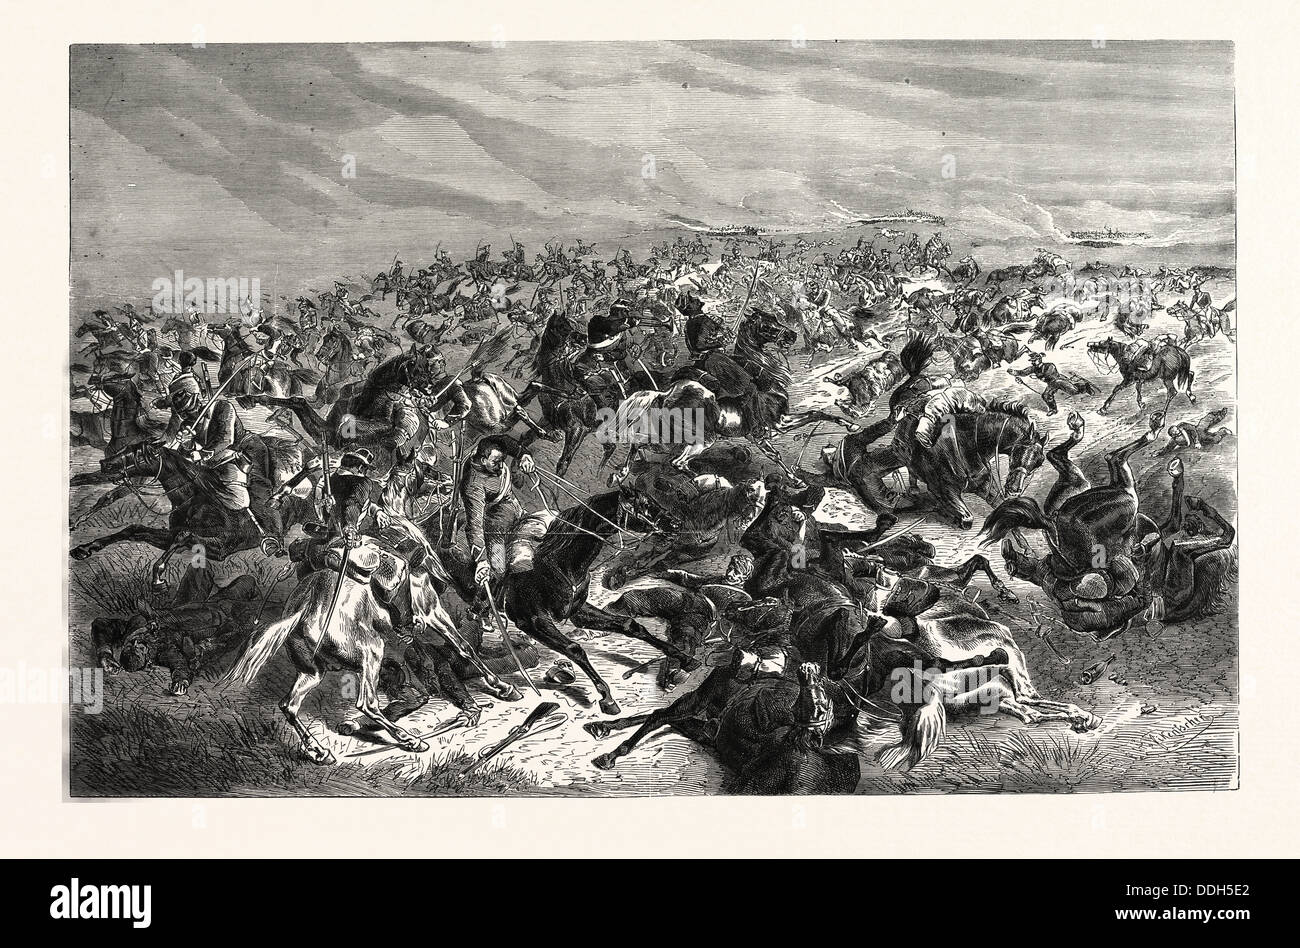 FRANCO-PRUSSIAN WAR: RAPID FIRE OF THE PRUSSIAN INFANTRY RIDERS AGAINST THE FRENCH CAVALRY, THE BATTLE OF SEDAN, - Stock Image